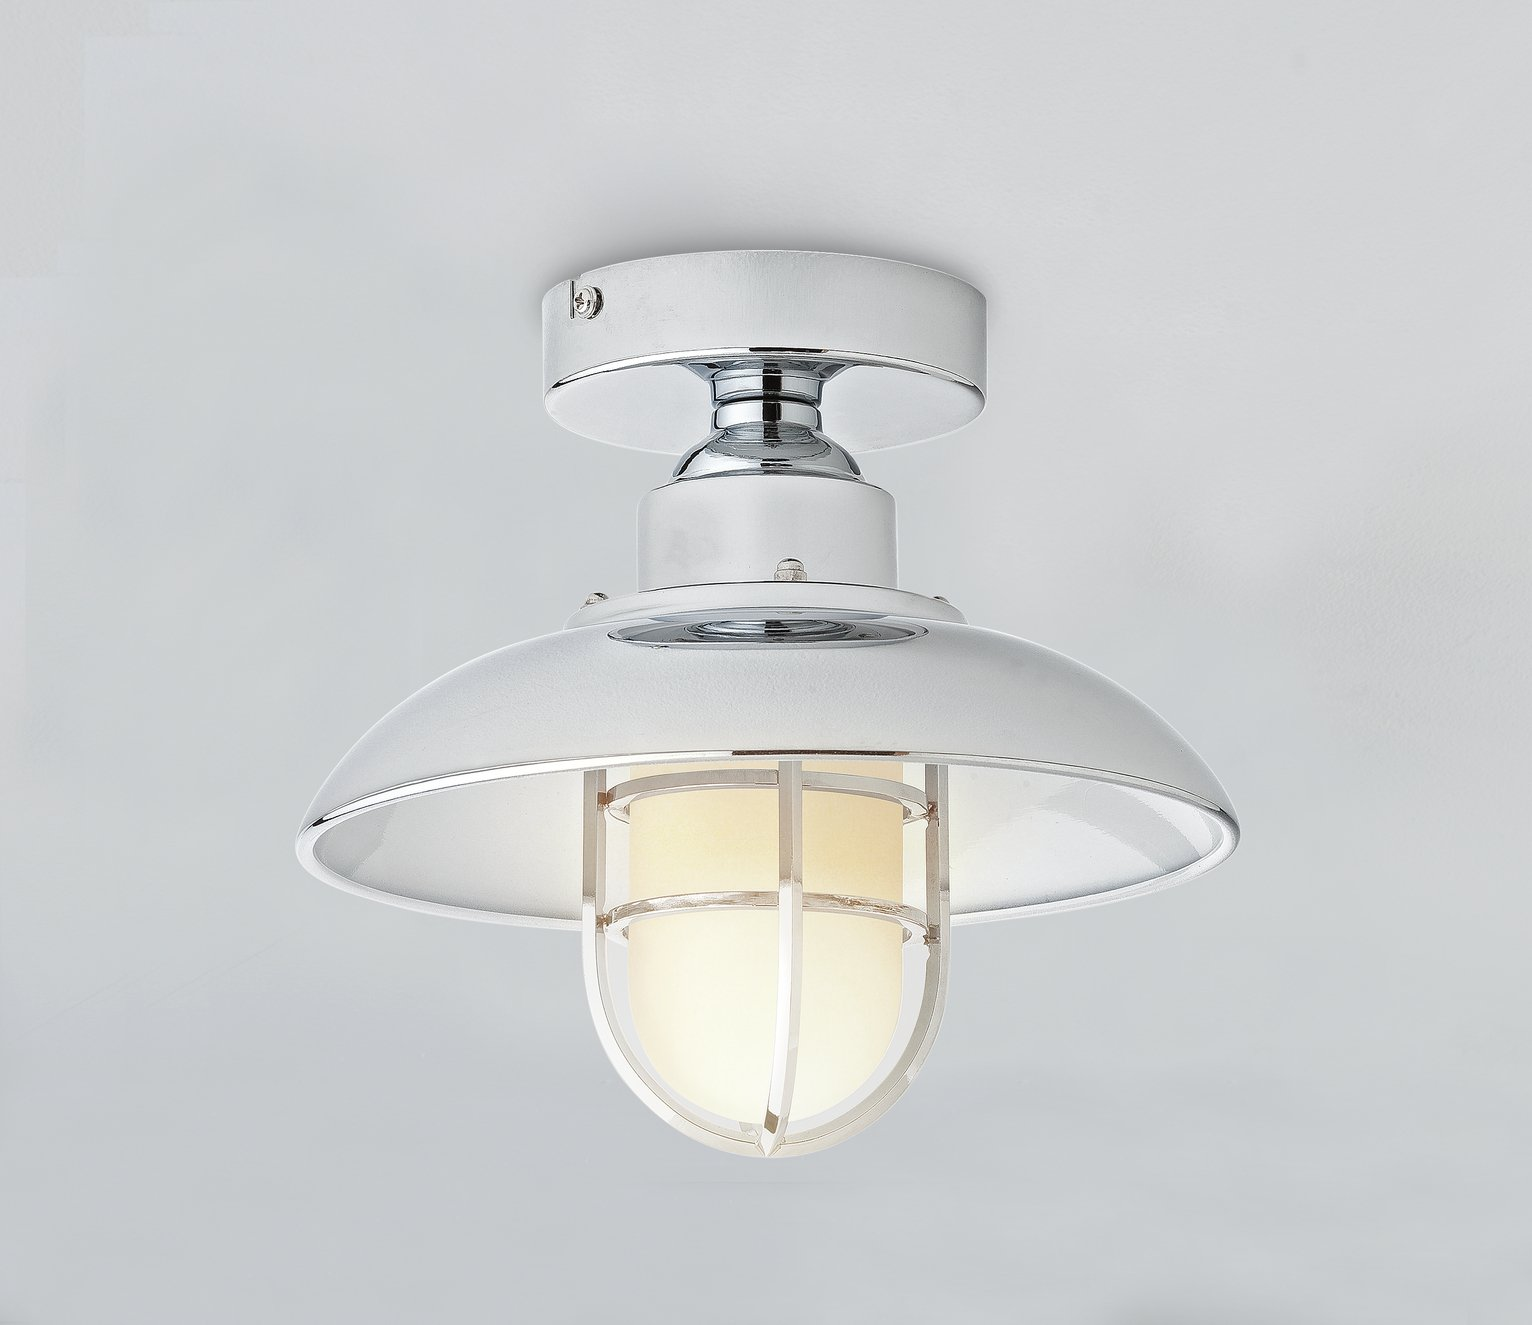 Bathroom Lighting Kent buy collection kildare fisherman lantern bathroom light - nickle